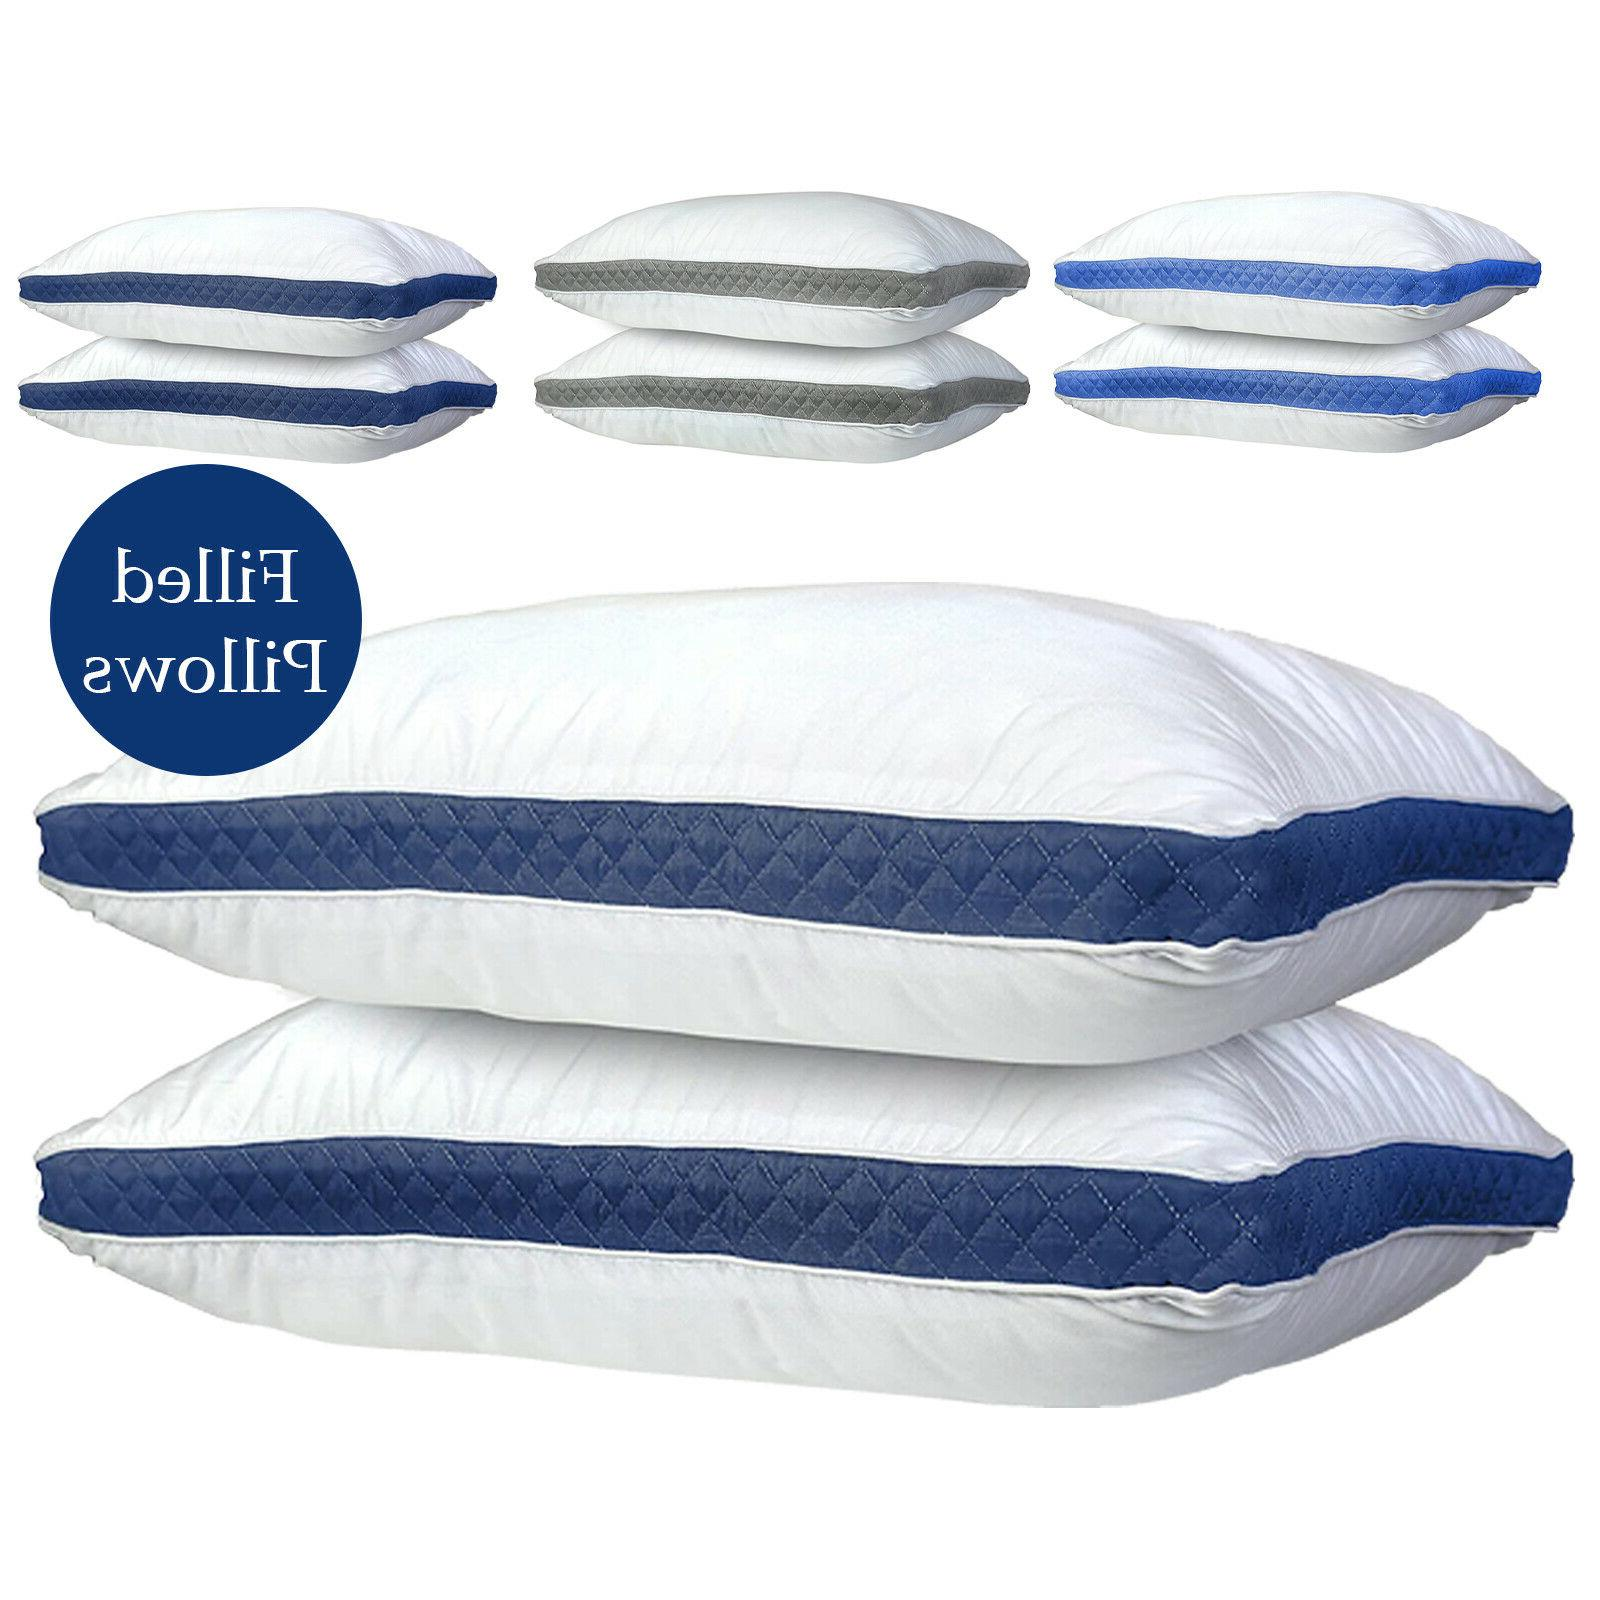 Gusseted Pillow 2 Bed Pillows Neck Support & Back Sleepers Pillows